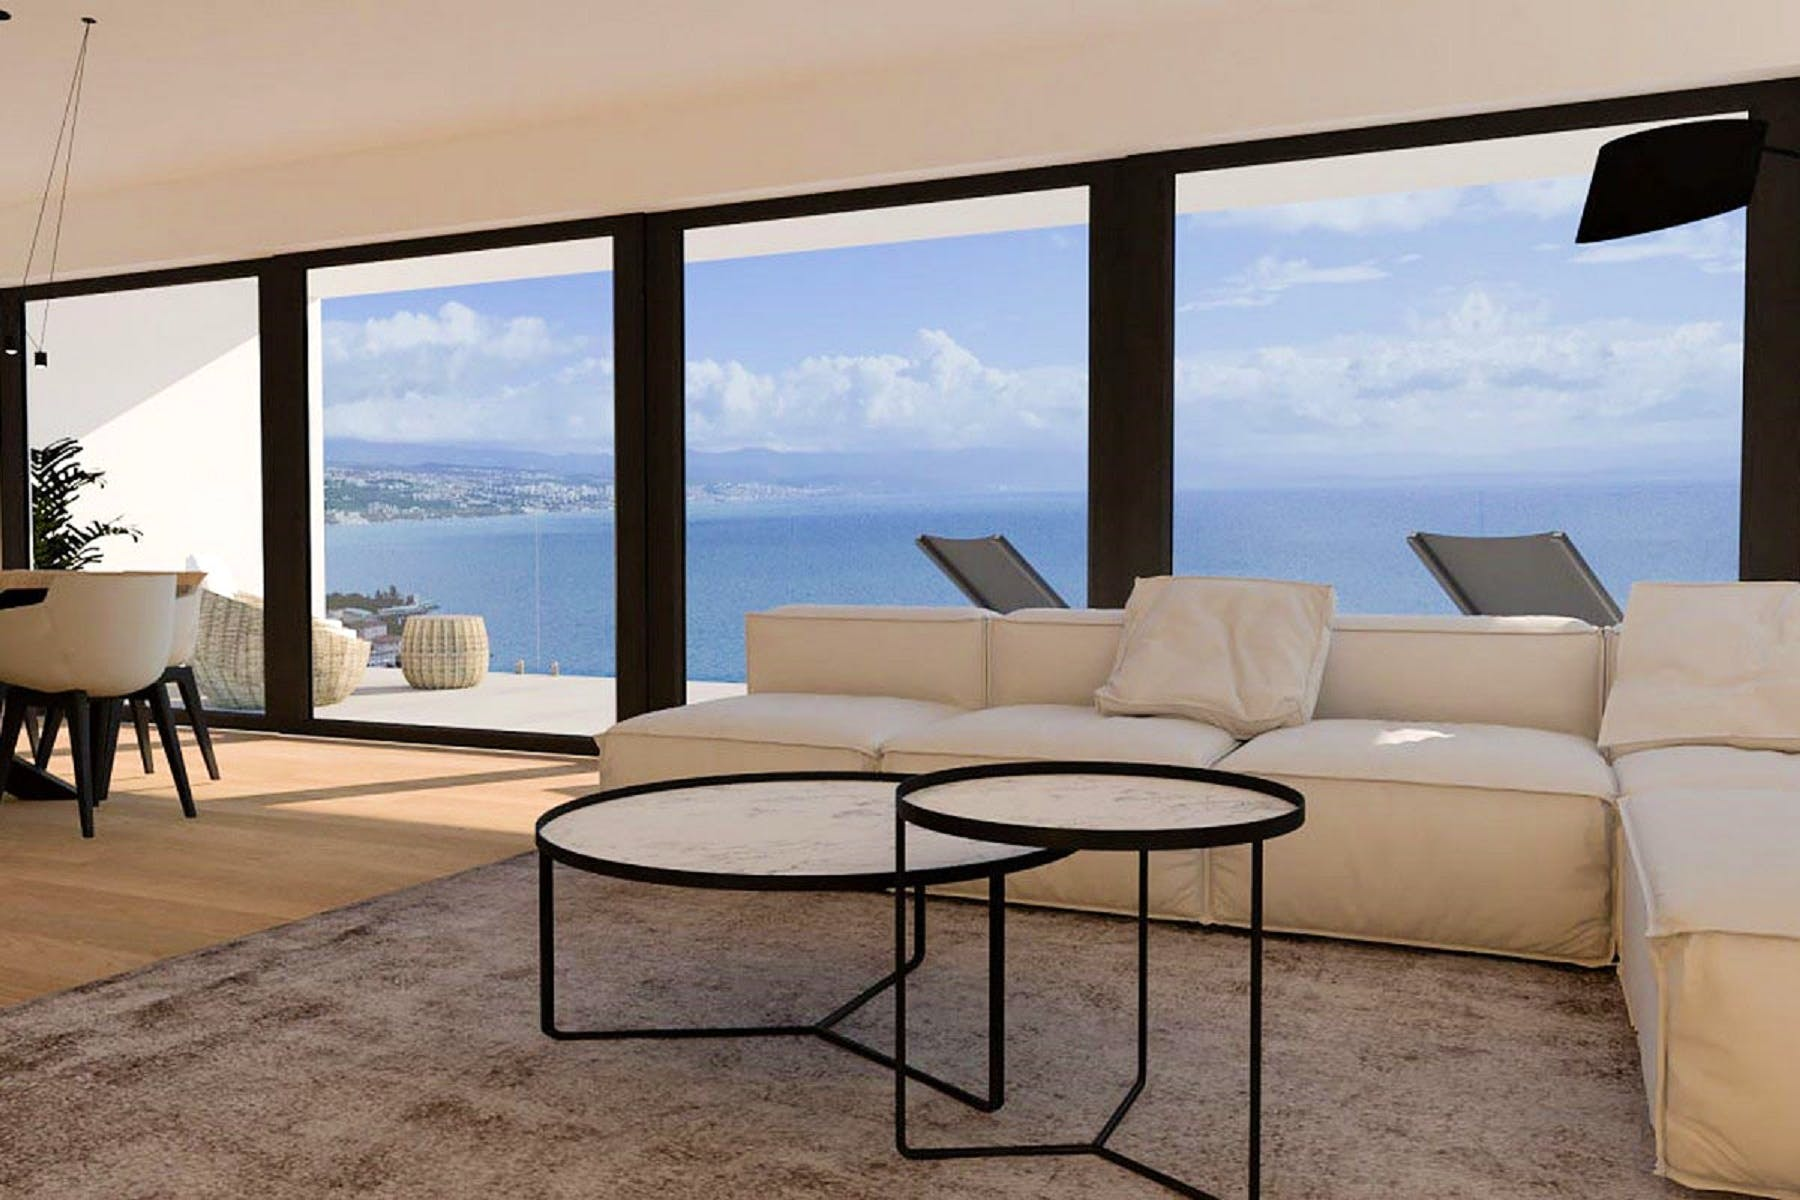 Living space with an amazing view